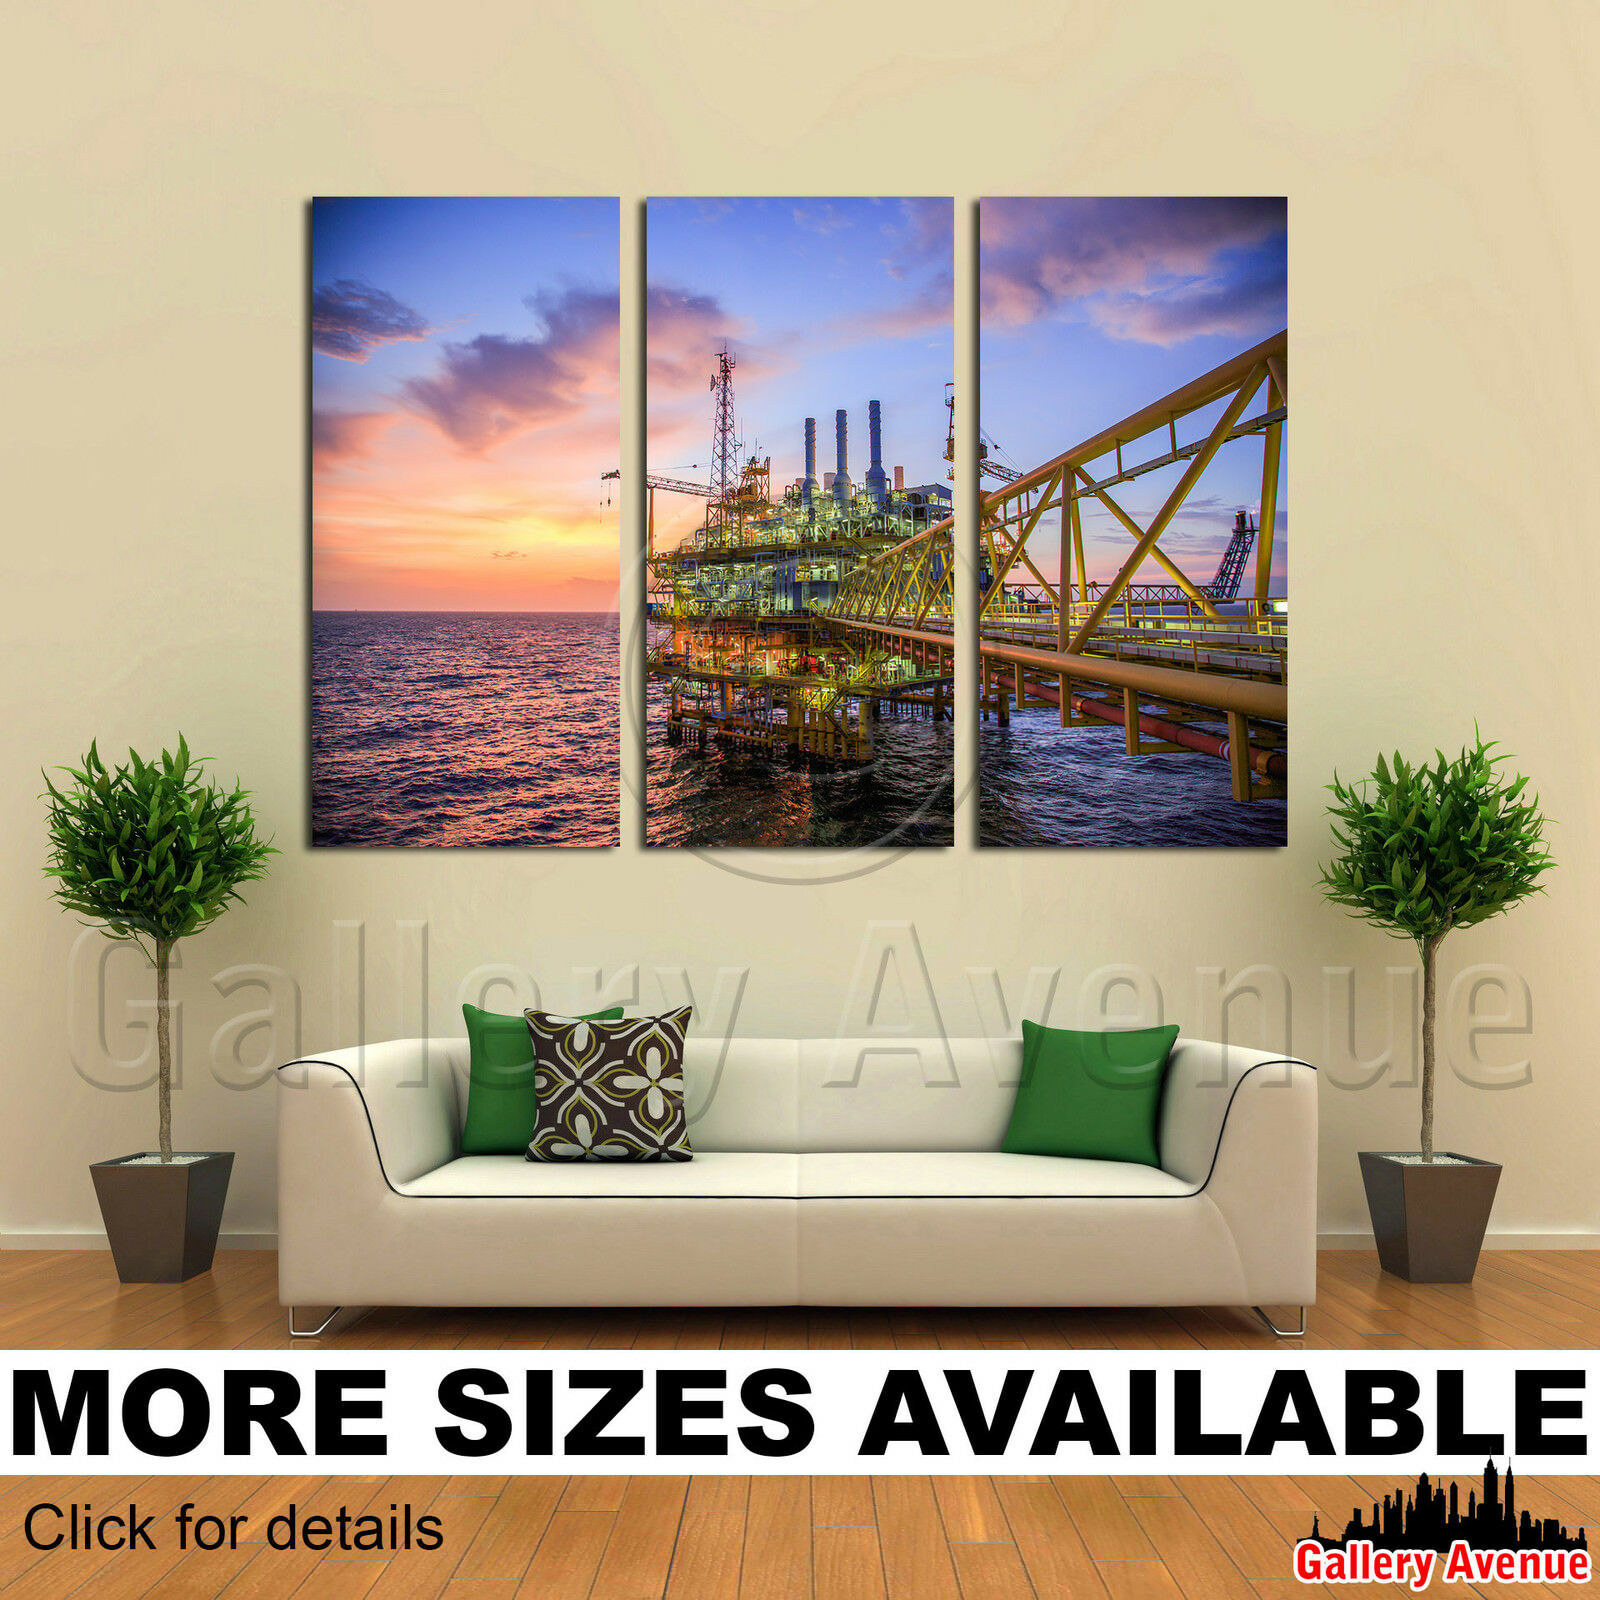 3 Panel Canvas Bild Drucken - Oil and gas platform in the sea 3.2